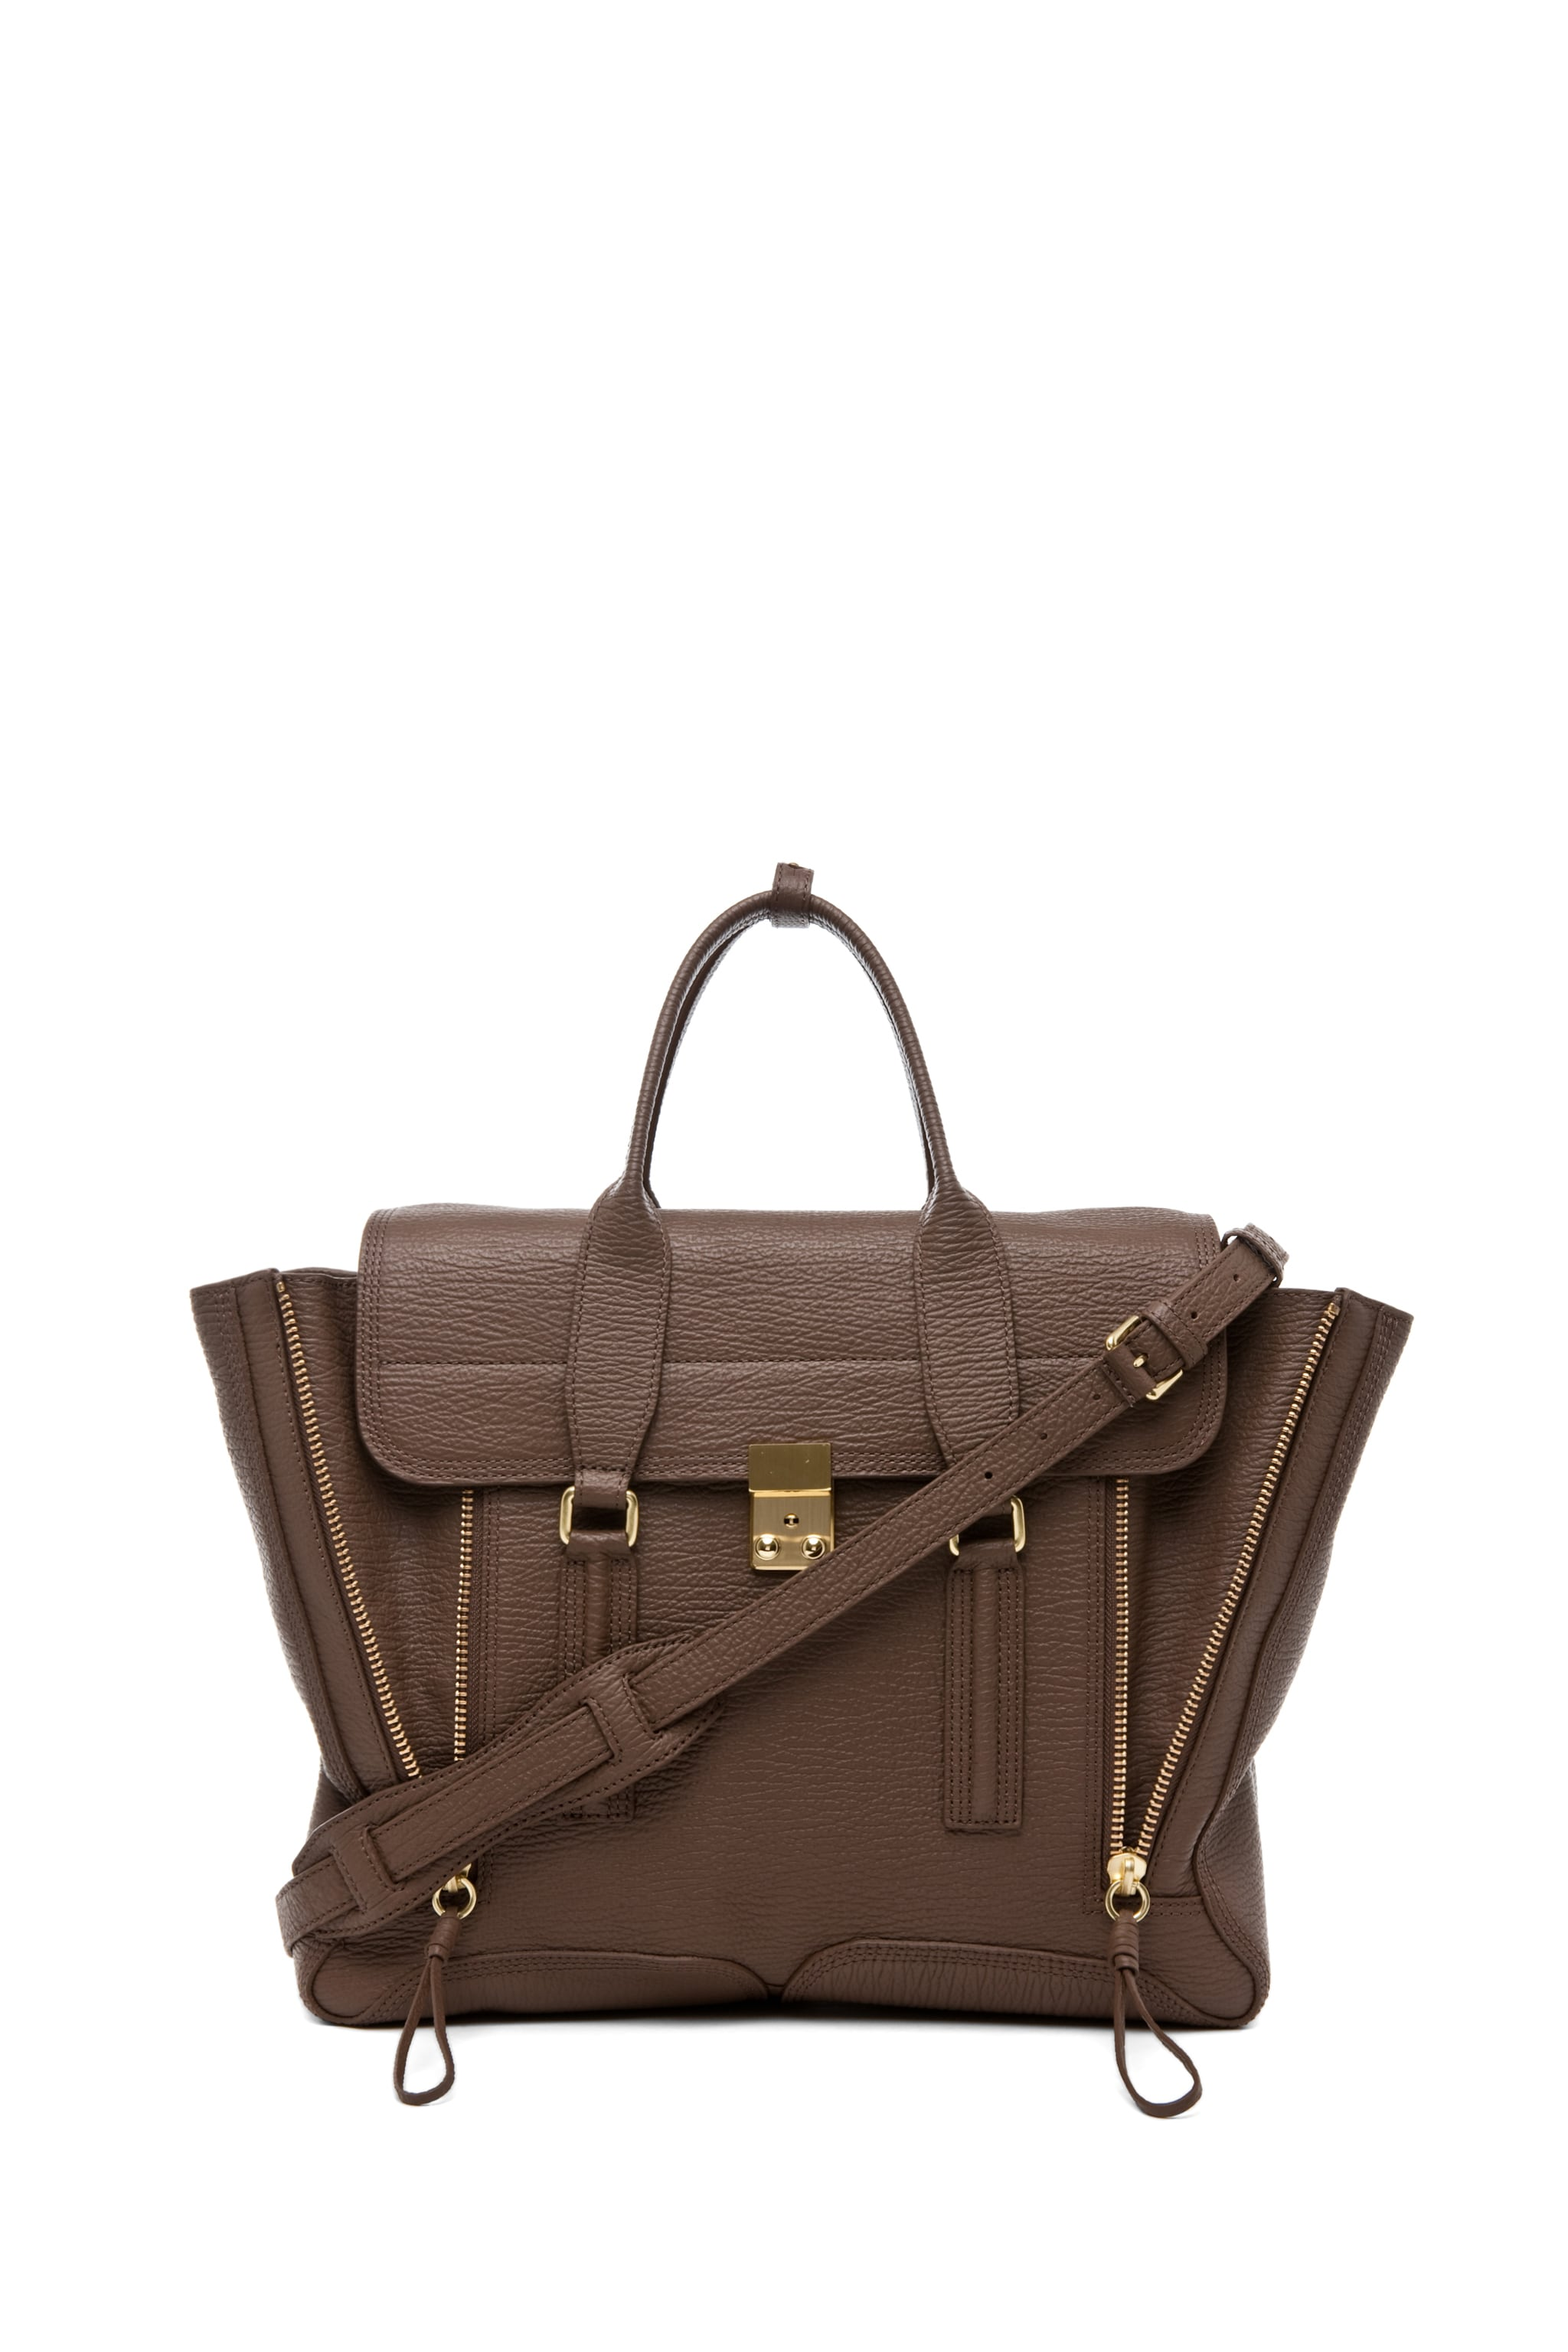 Image 1 of 3.1 phillip lim Pashli Satchel in Taupe